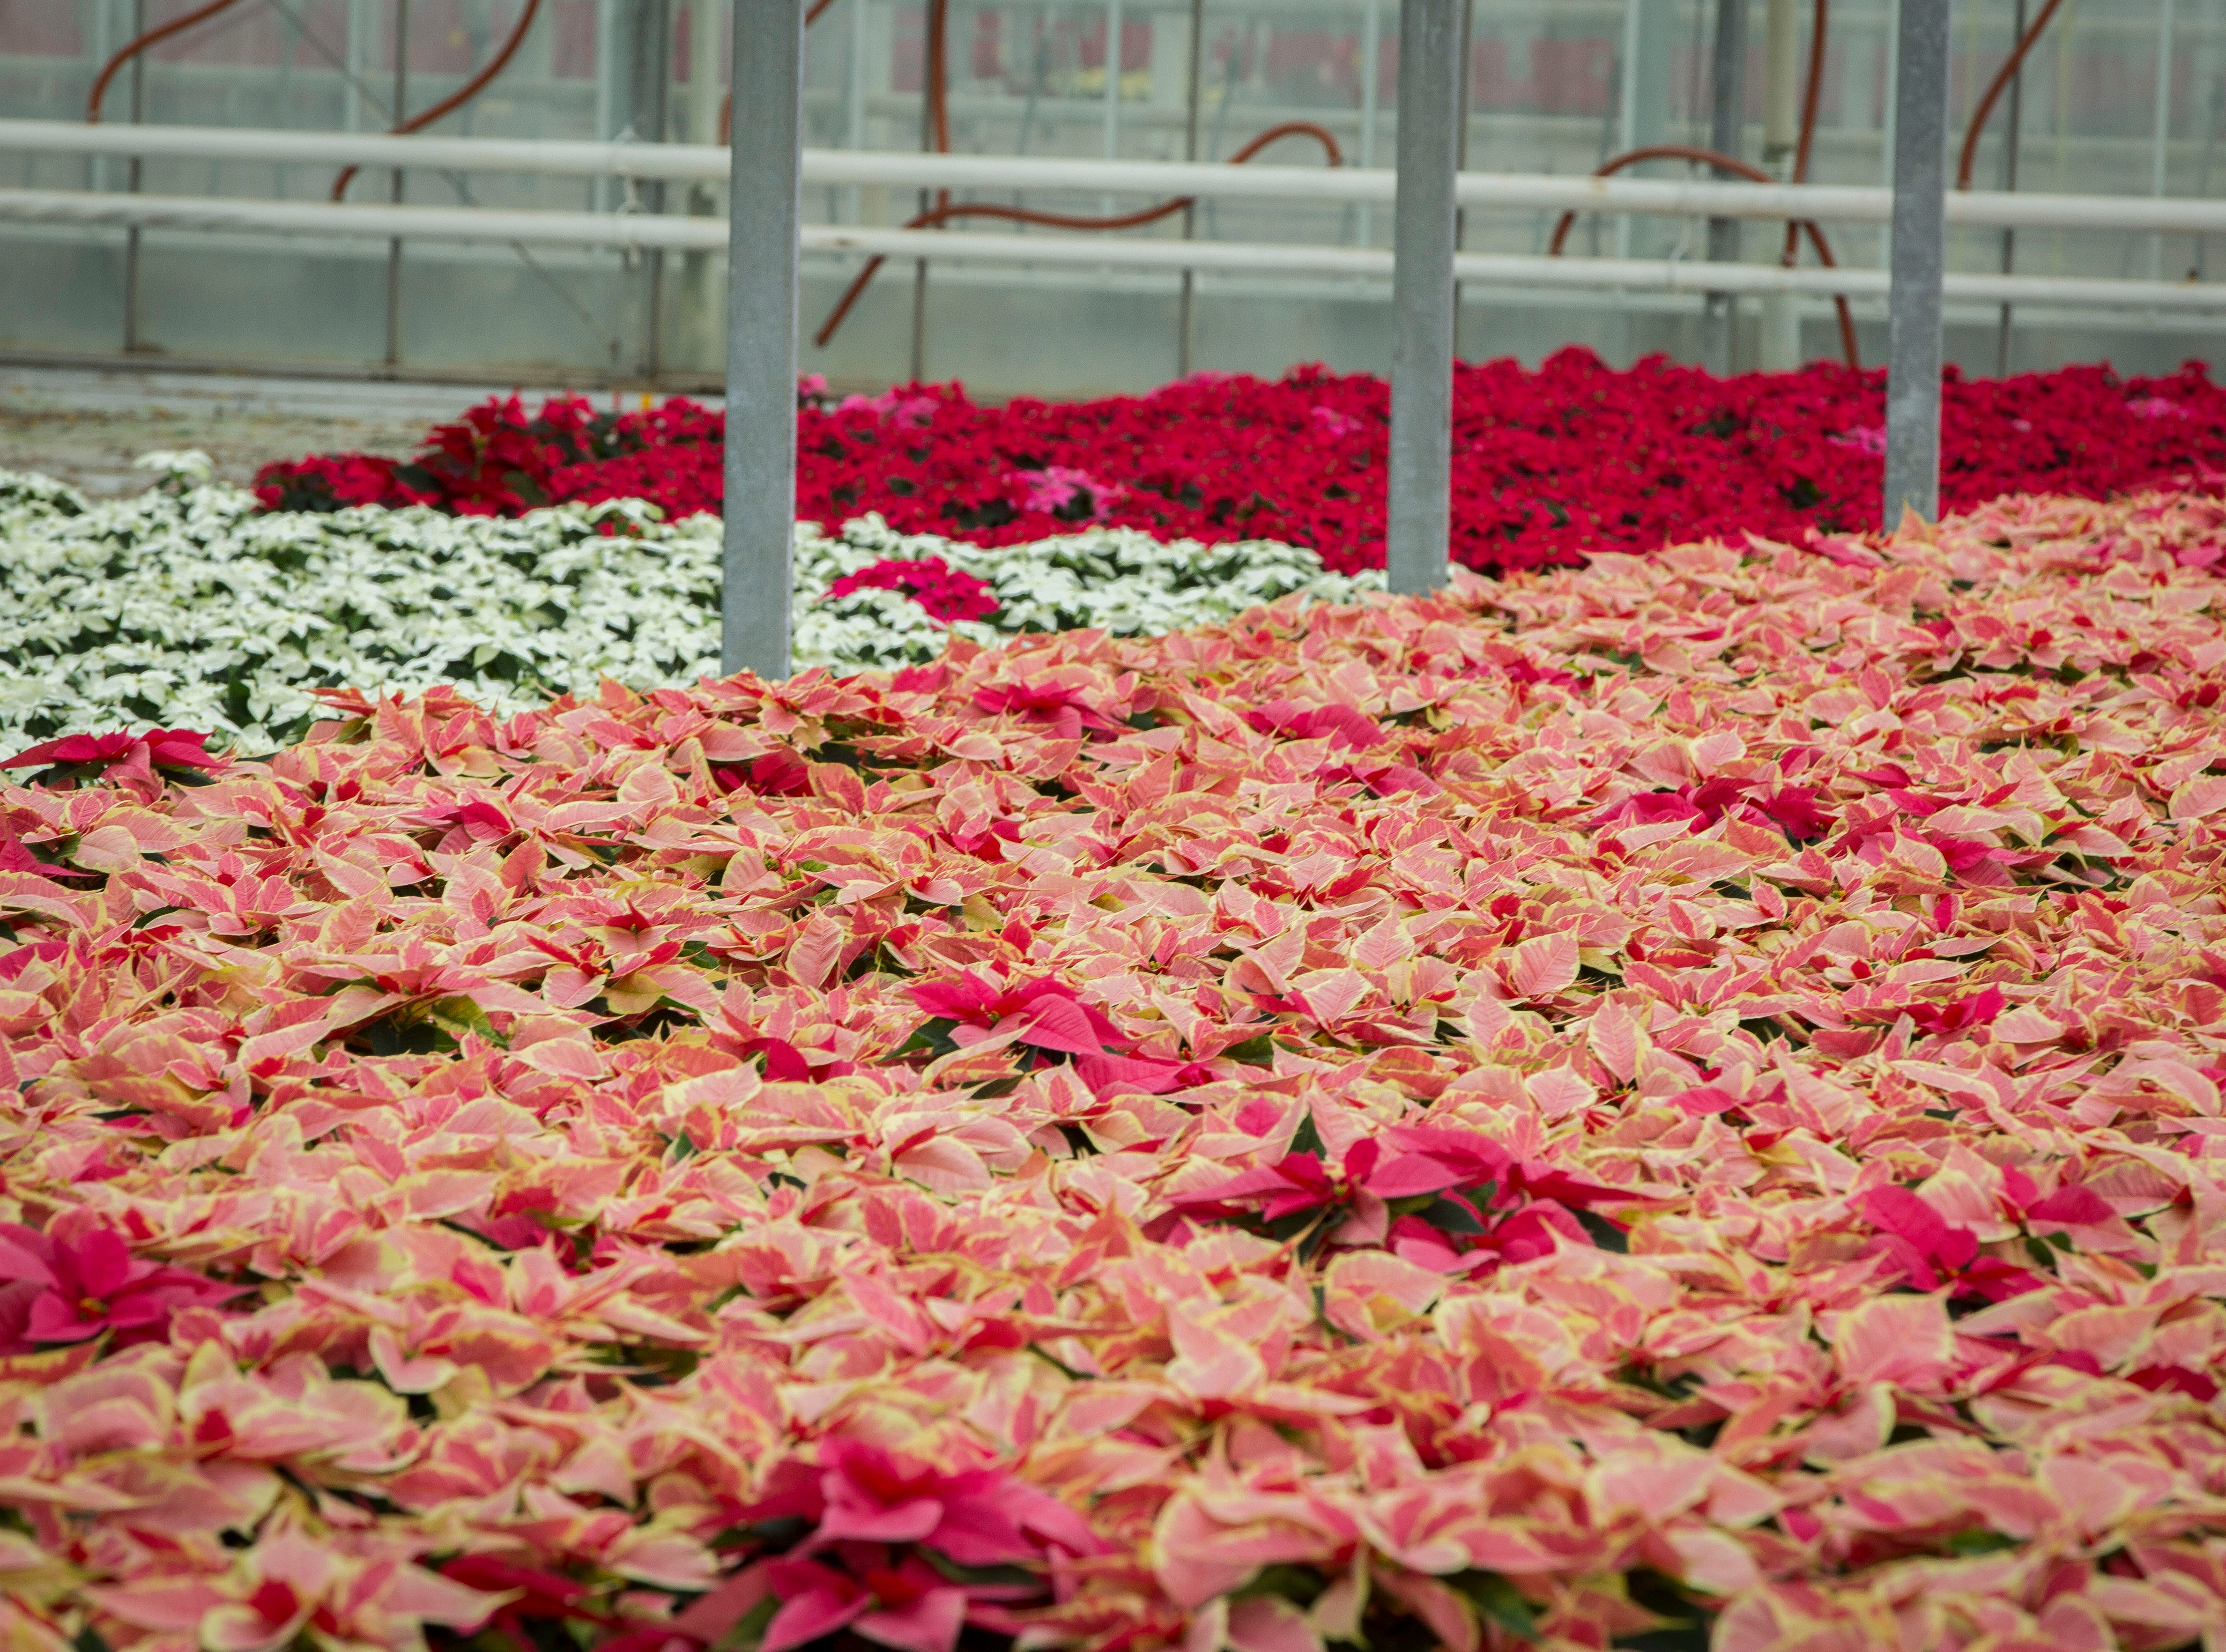 Poinsettia plants are ready for packaging at Smith Gardens in Aurora, Oregon Friday November, 30, 2018. The plants will be packaged for one of the last shipments of the year in early December and be delivered to local big box stores.